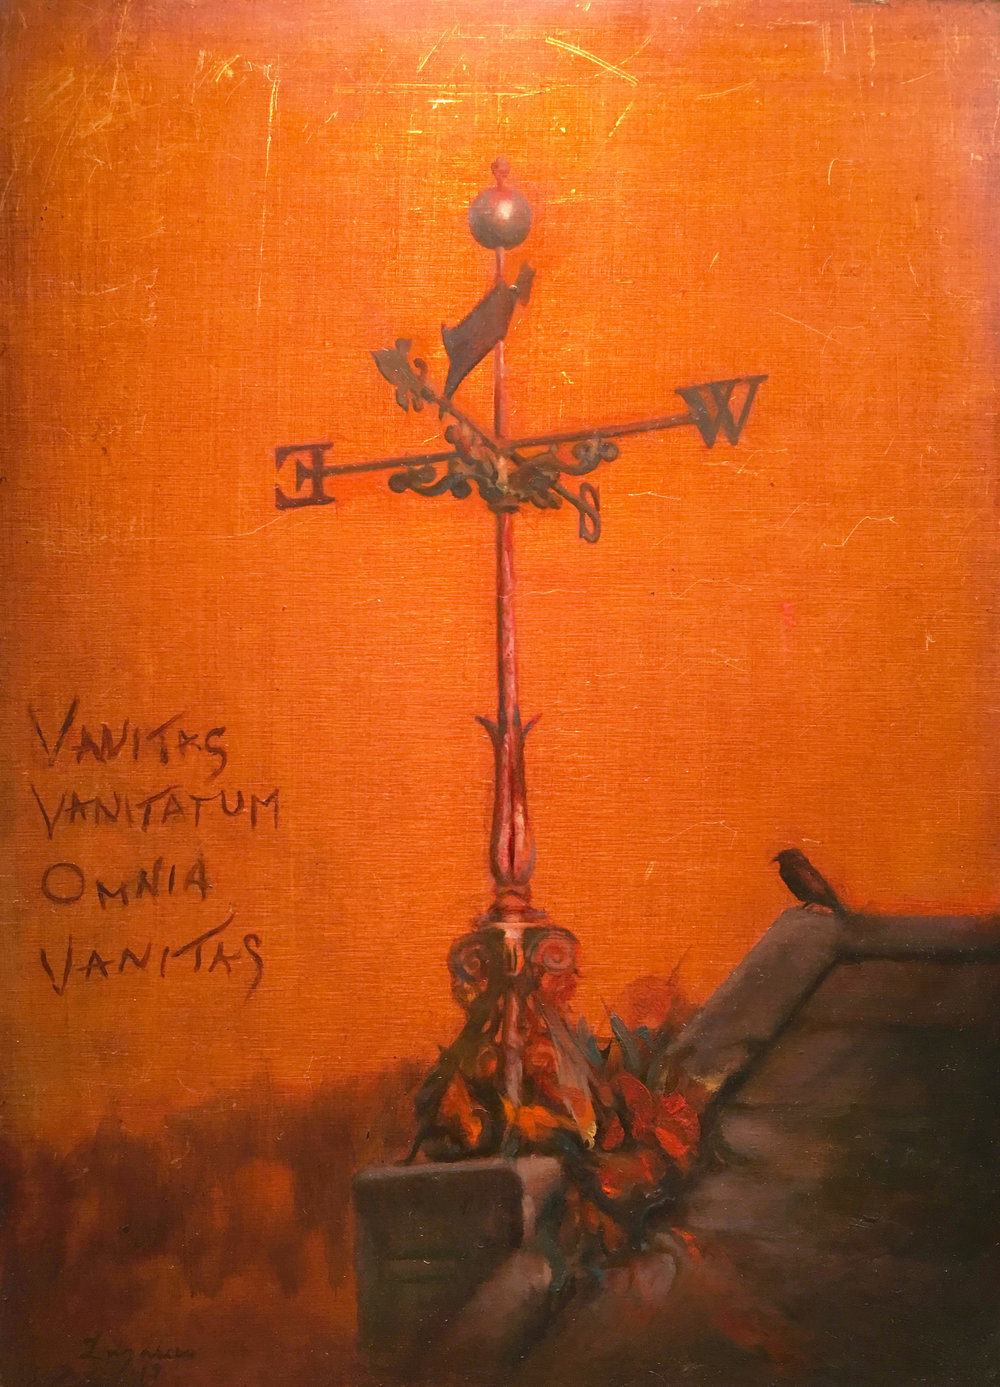 Vanitas (study) 9 x 12.5 in. Oil on aluminum.